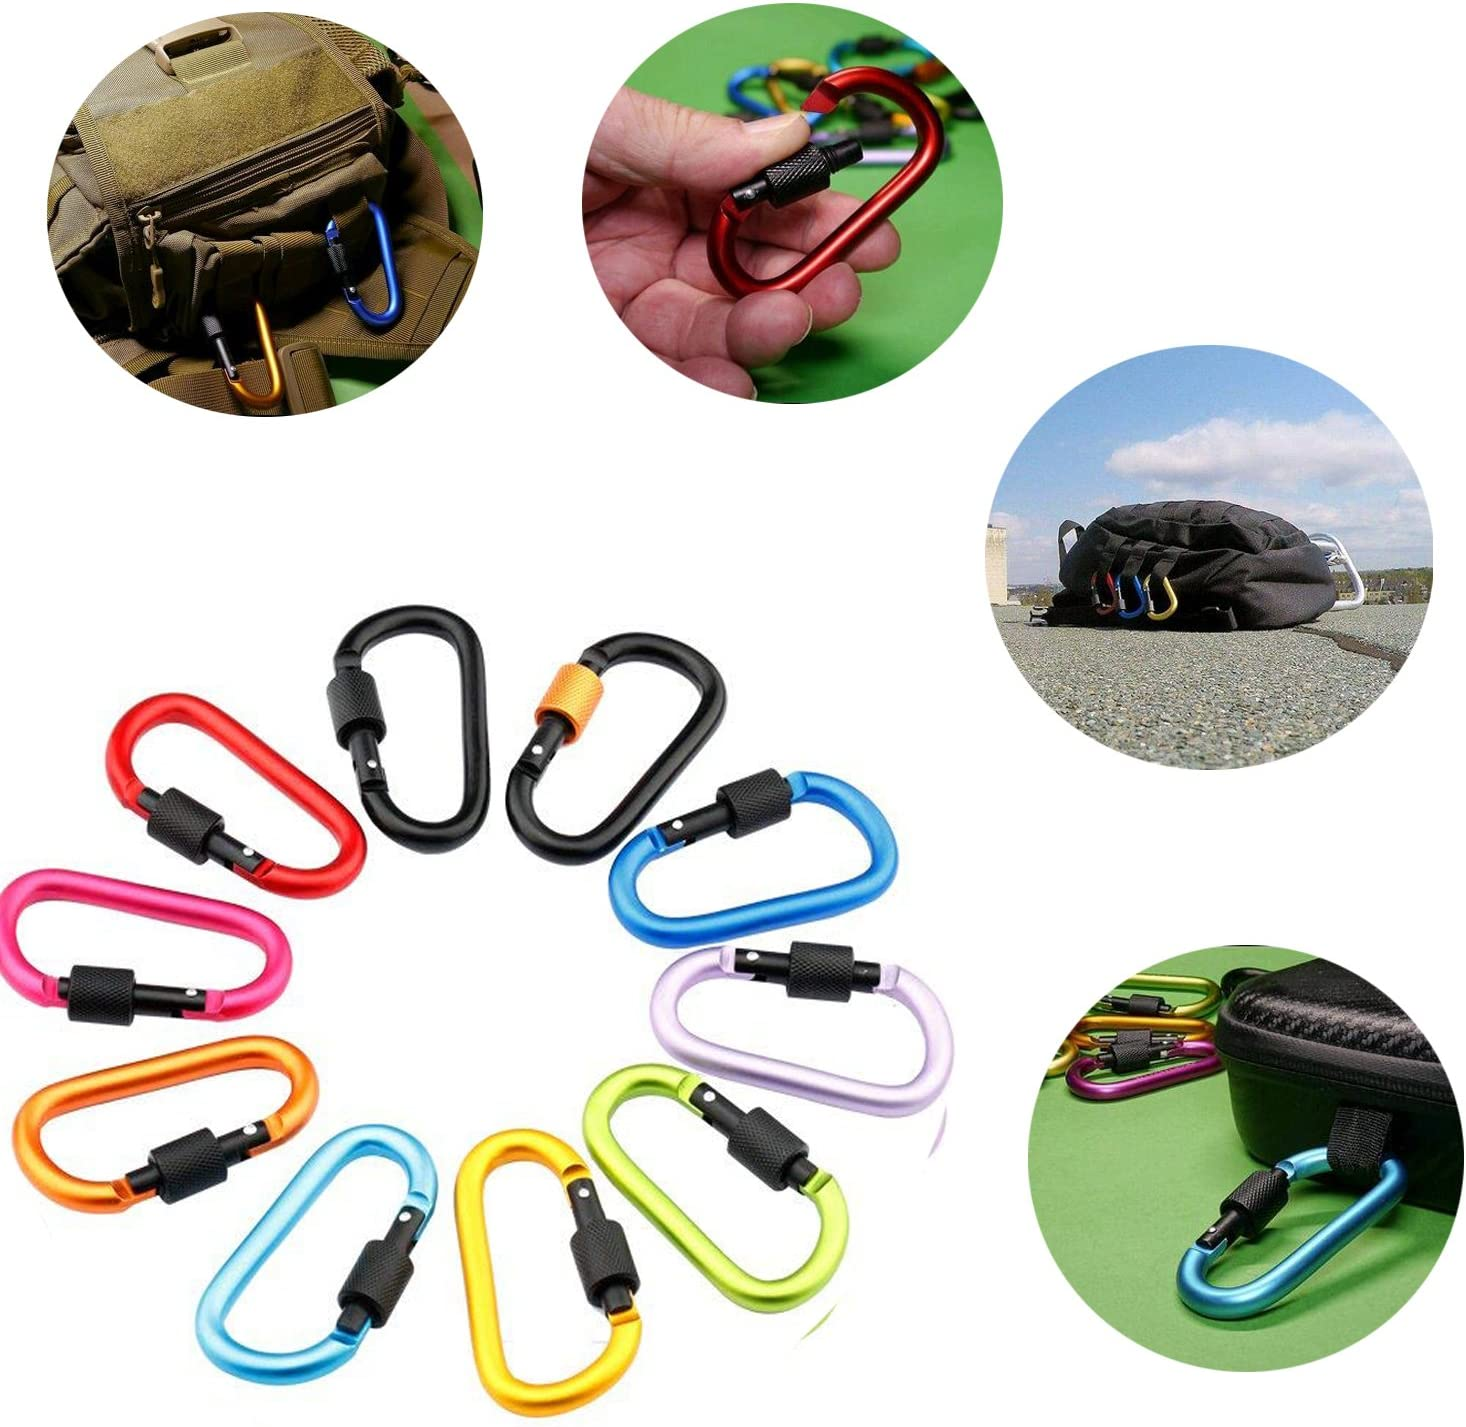 Spring-loaded D-Ring Key Chain Clip Hook For Camping Hiking Traveling Not for Climbing Firlar 10 PCS Locking Carabiner Premium Aluminum Alloy Carabiner